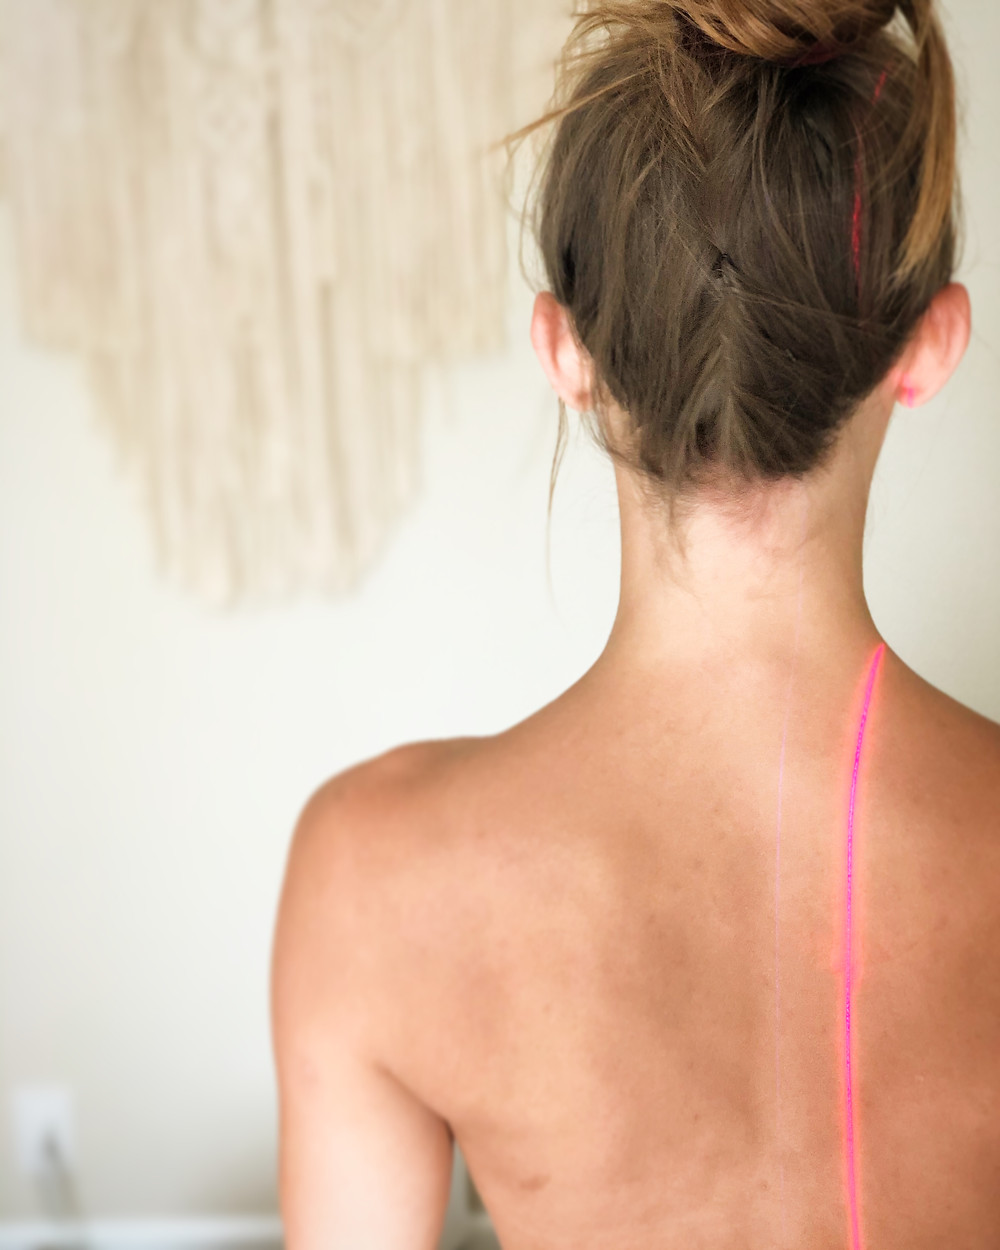 Cold Laser Therapy at Kacie Hill Acupuncture